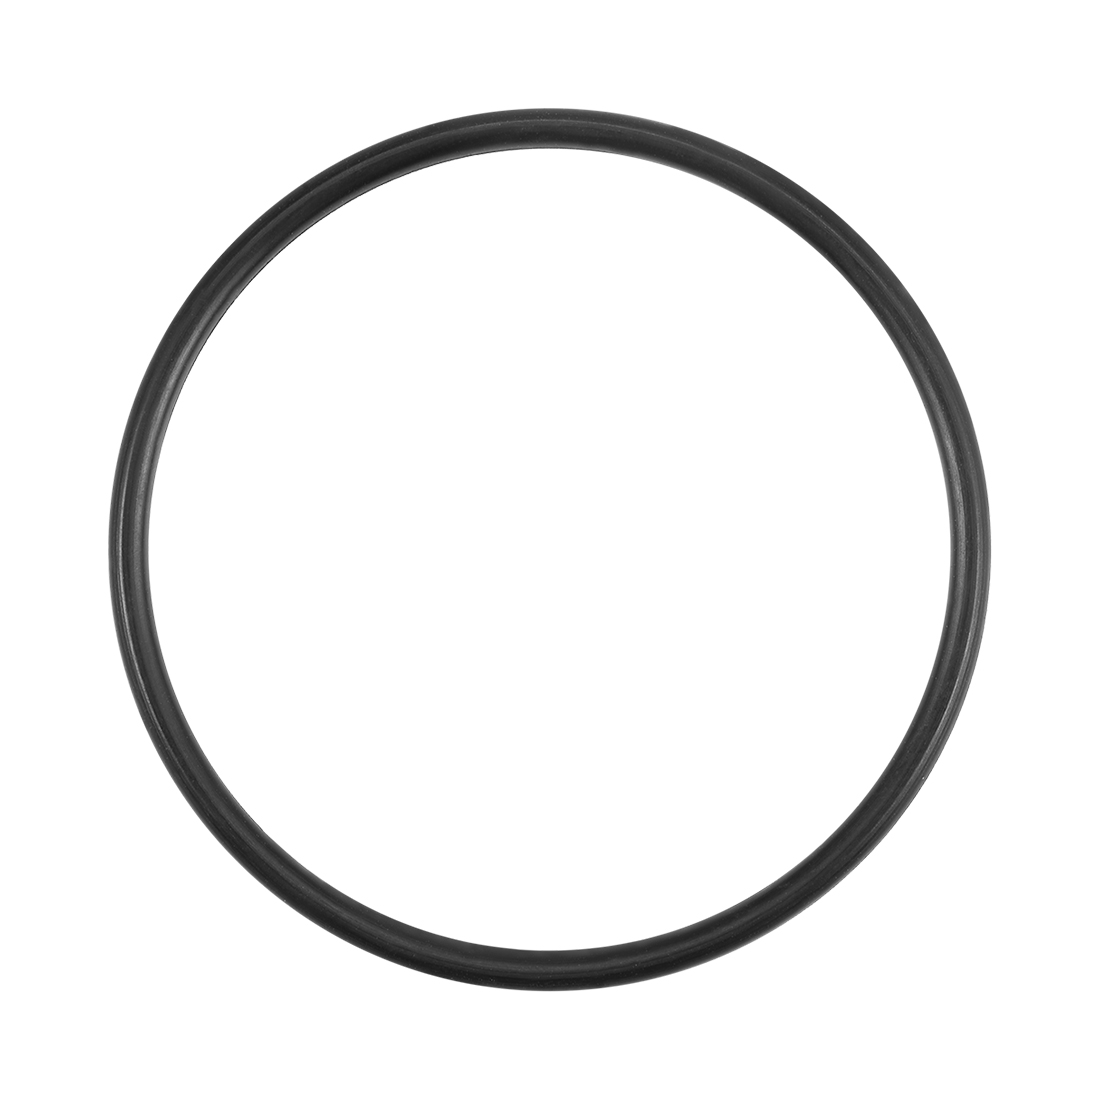 O-Rings Nitrile Rubber 38.5mm x 42.1mm x 1.8mm Round Seal Gasket